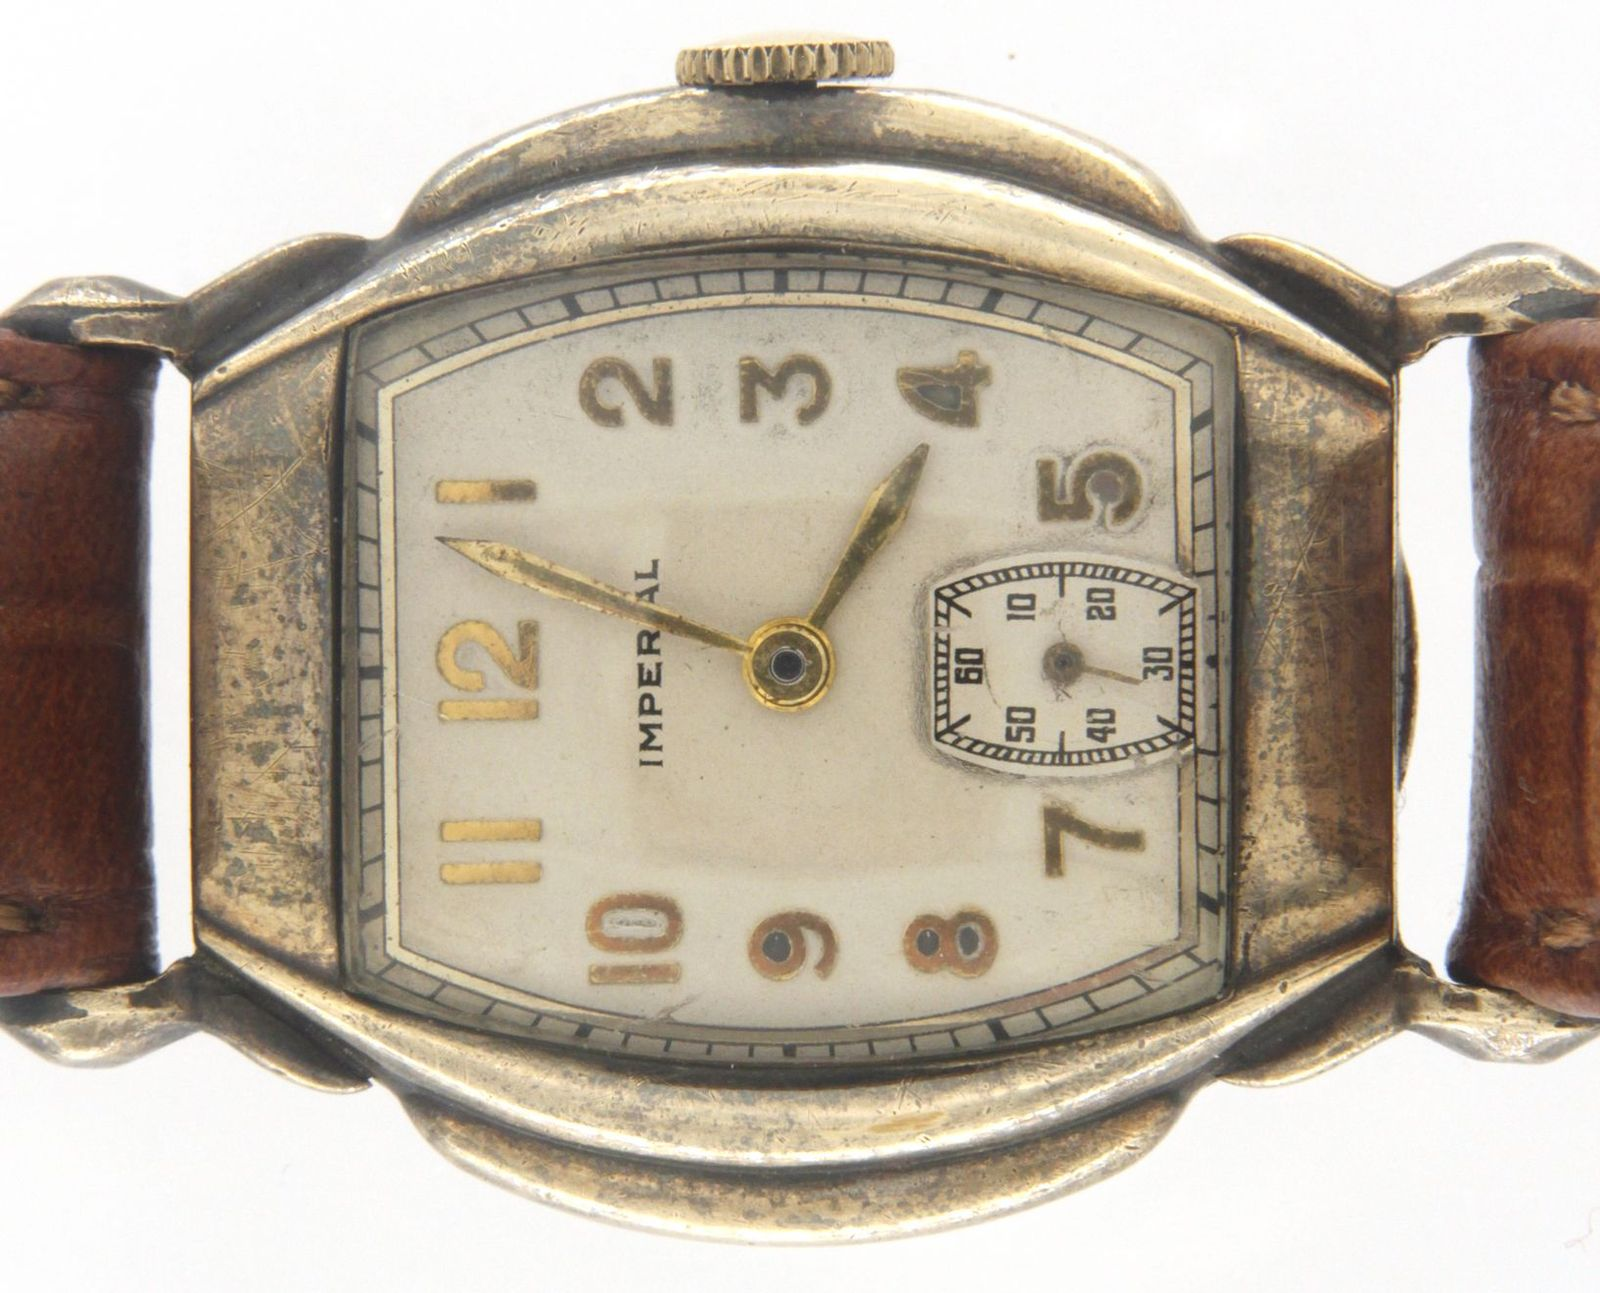 Primary image for Imperial Wrist Watch Model 144